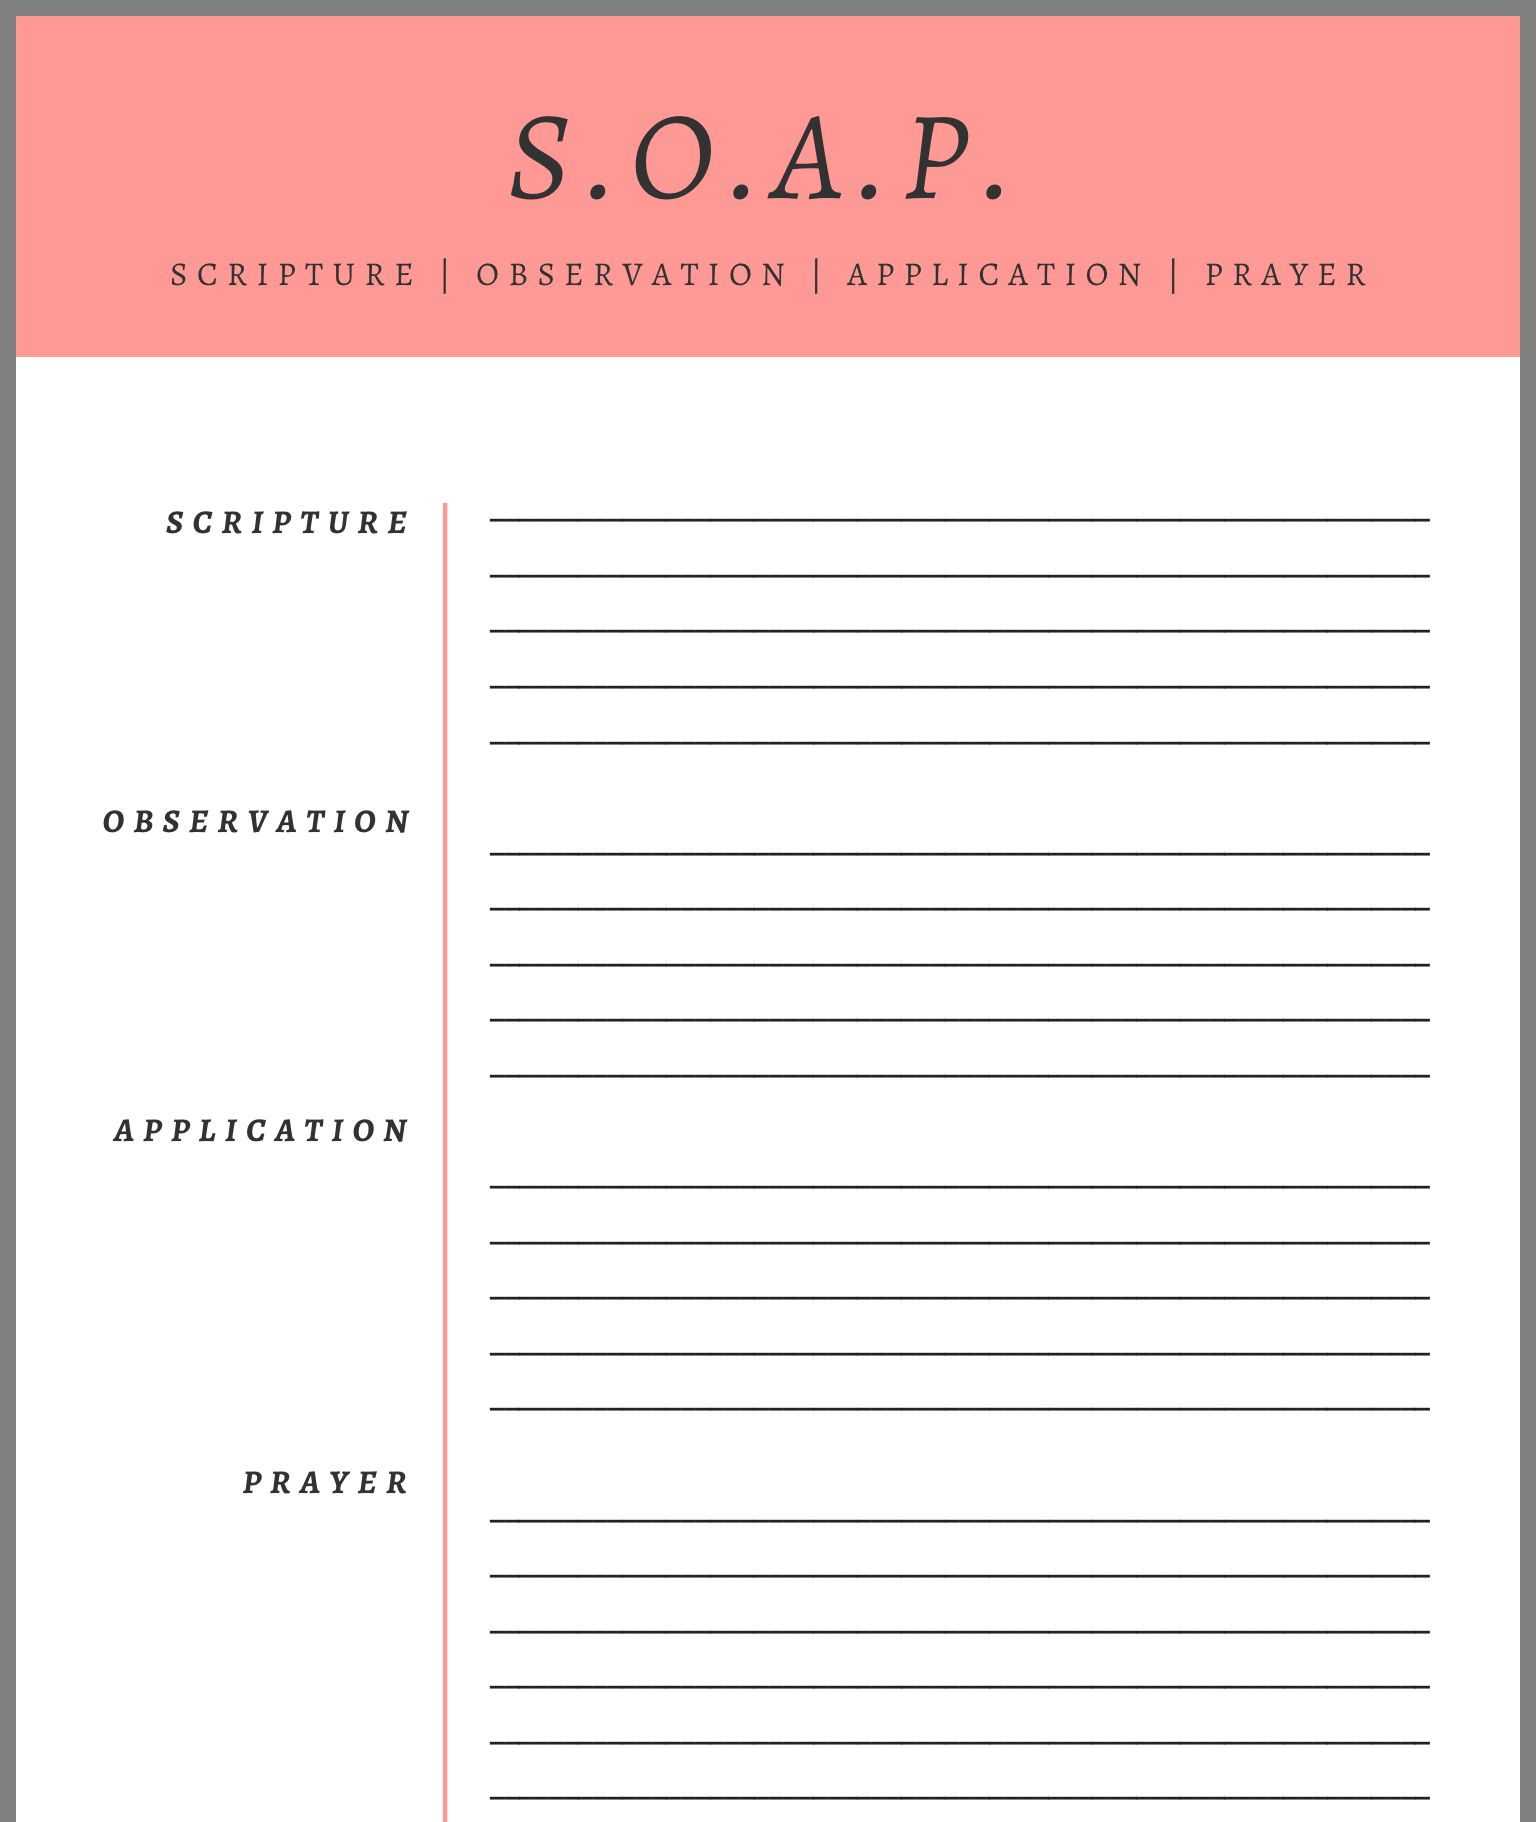 Good Soap Info And Printable | Christian Jounaling | Pinterest - Free Printable Bible Studies For Men